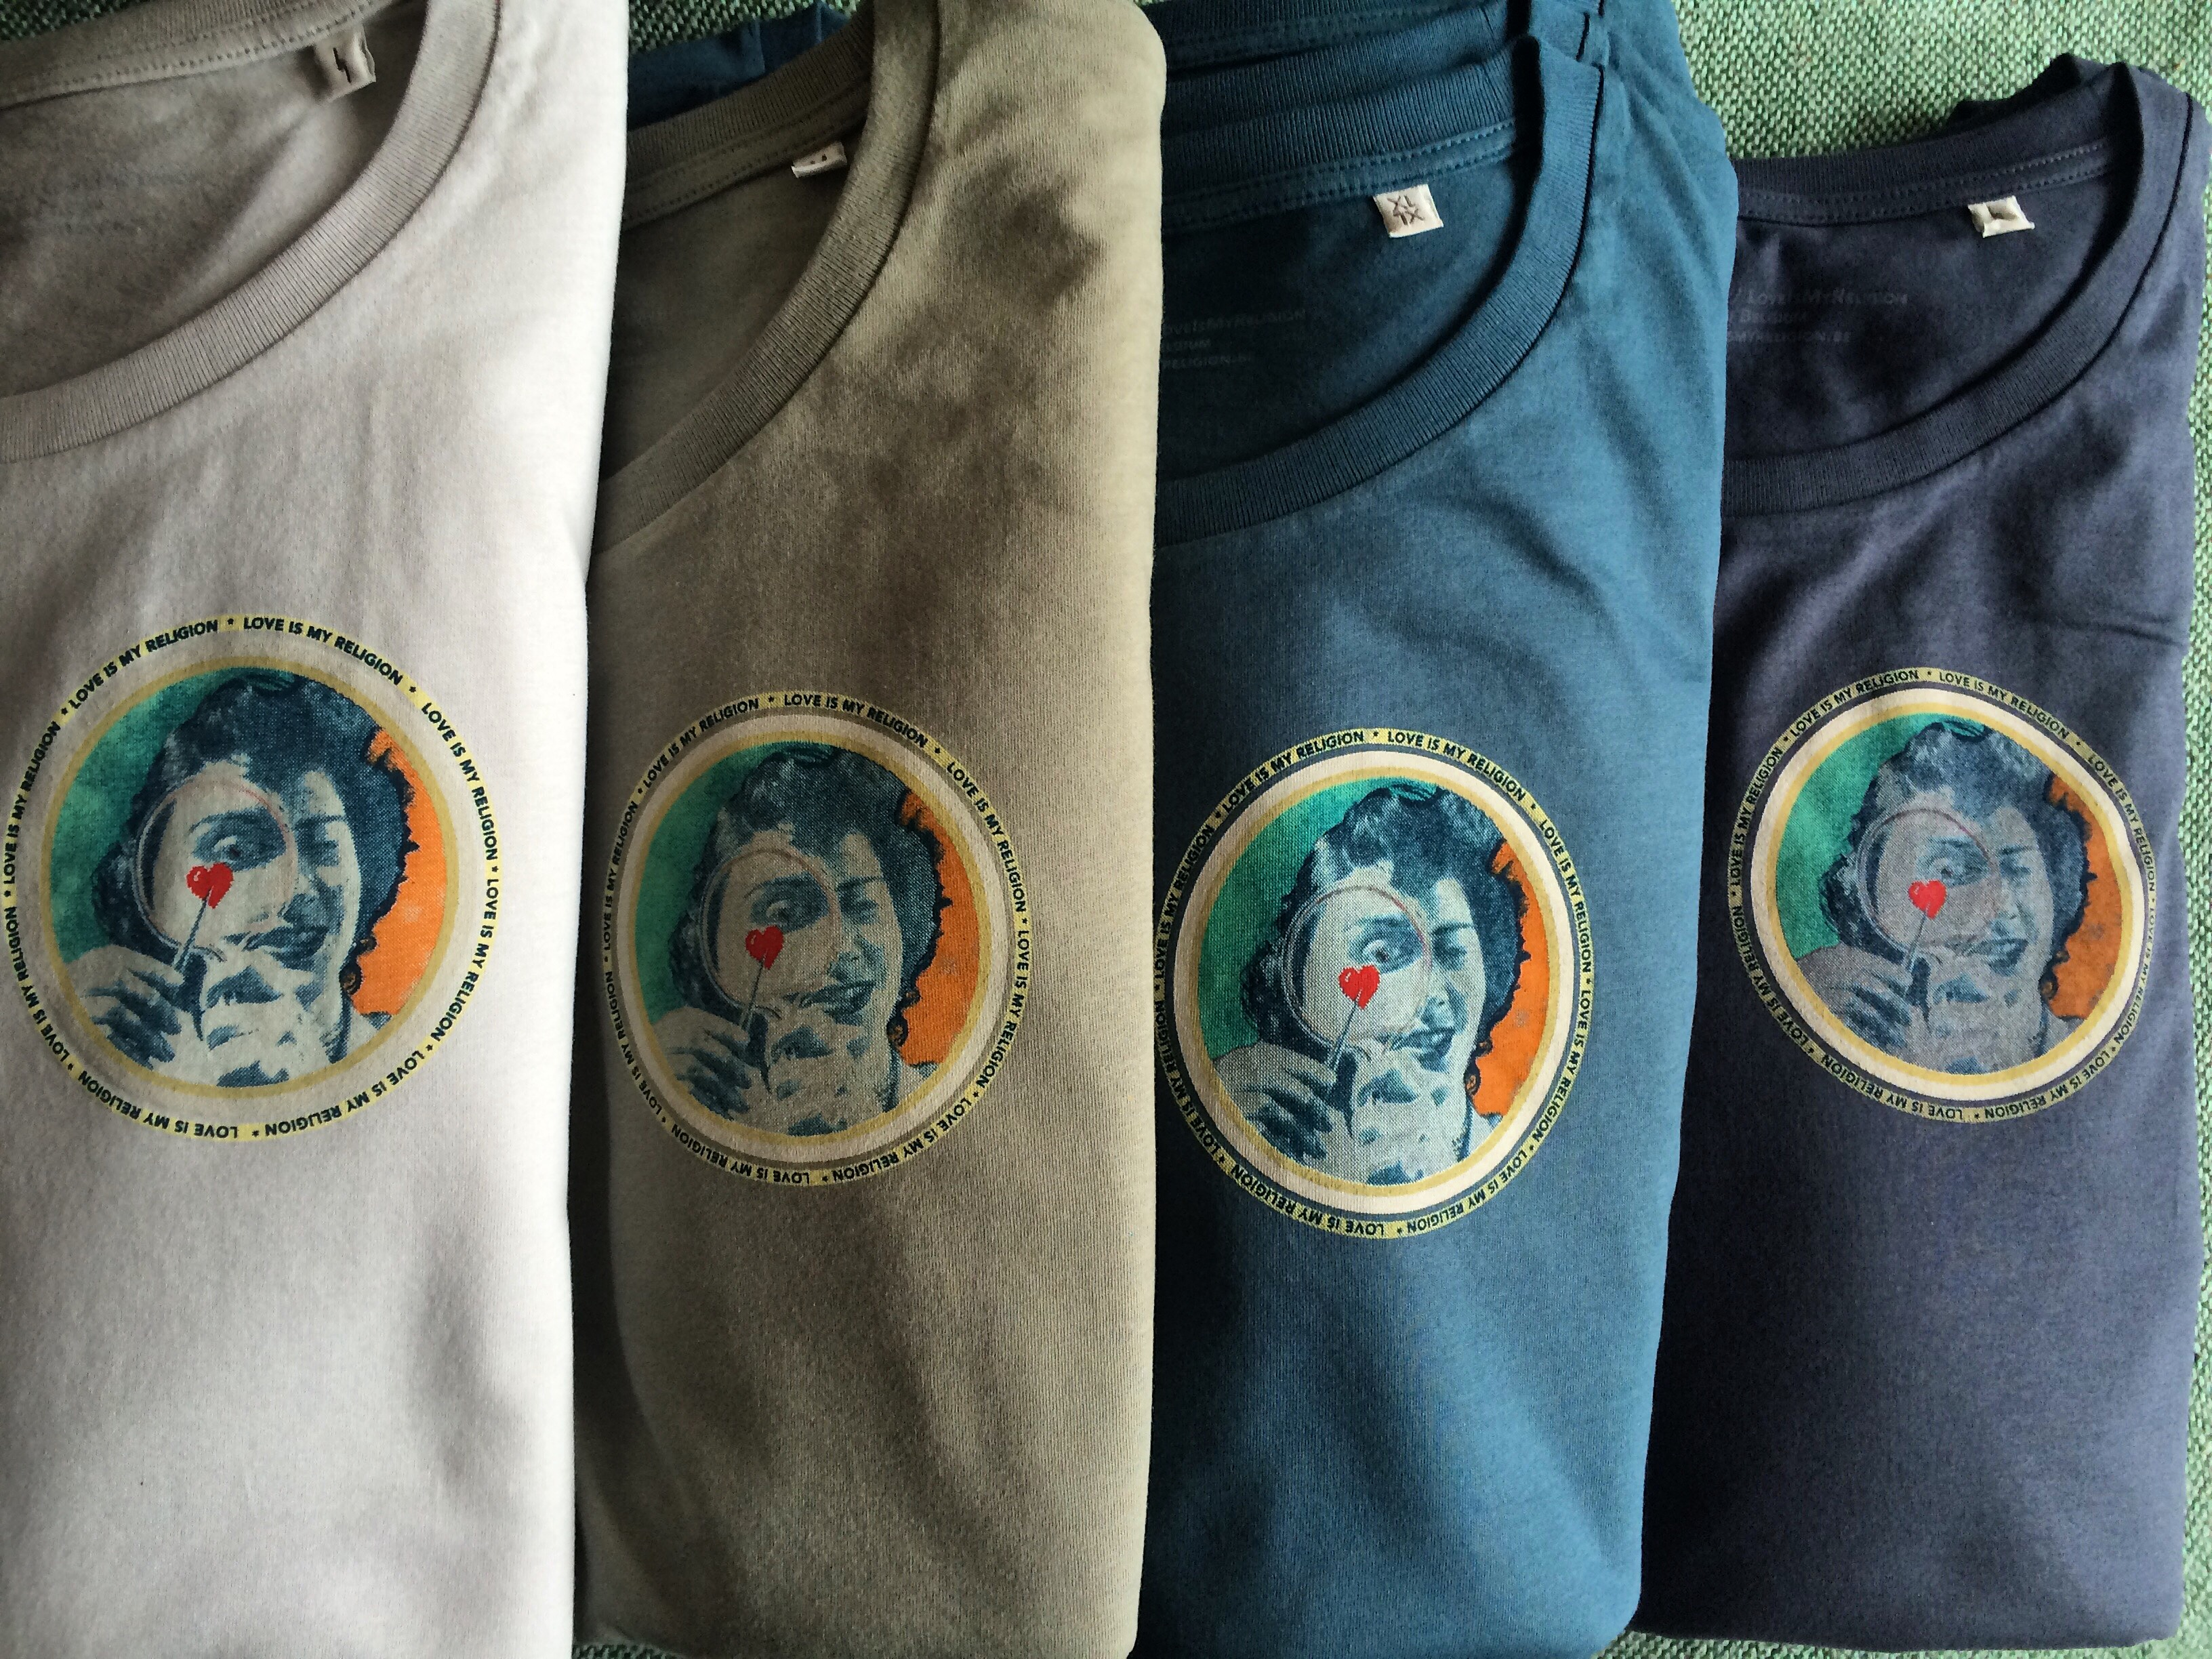 Men's T-shirts in grey-violet, light khaki, petroleum blue, and navy. Design by Sammy Slabbinck on the heart.